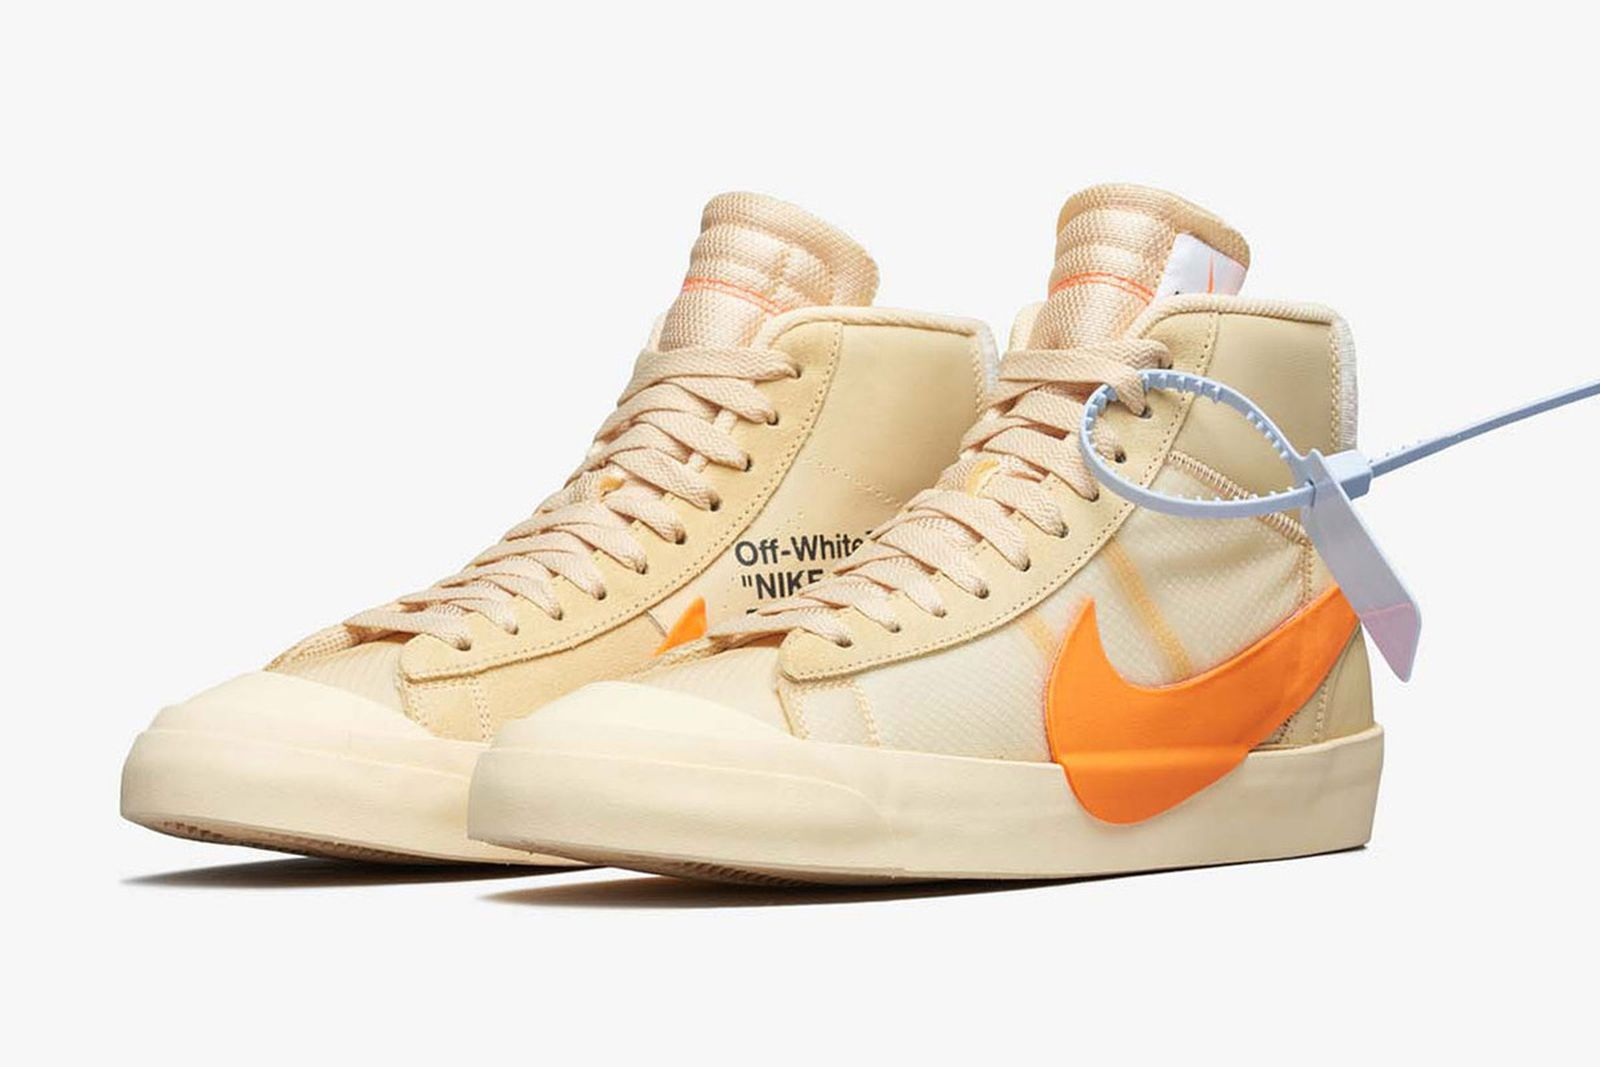 hollow main Nike OFF-WHITE c/o Virgil Abloh StockX